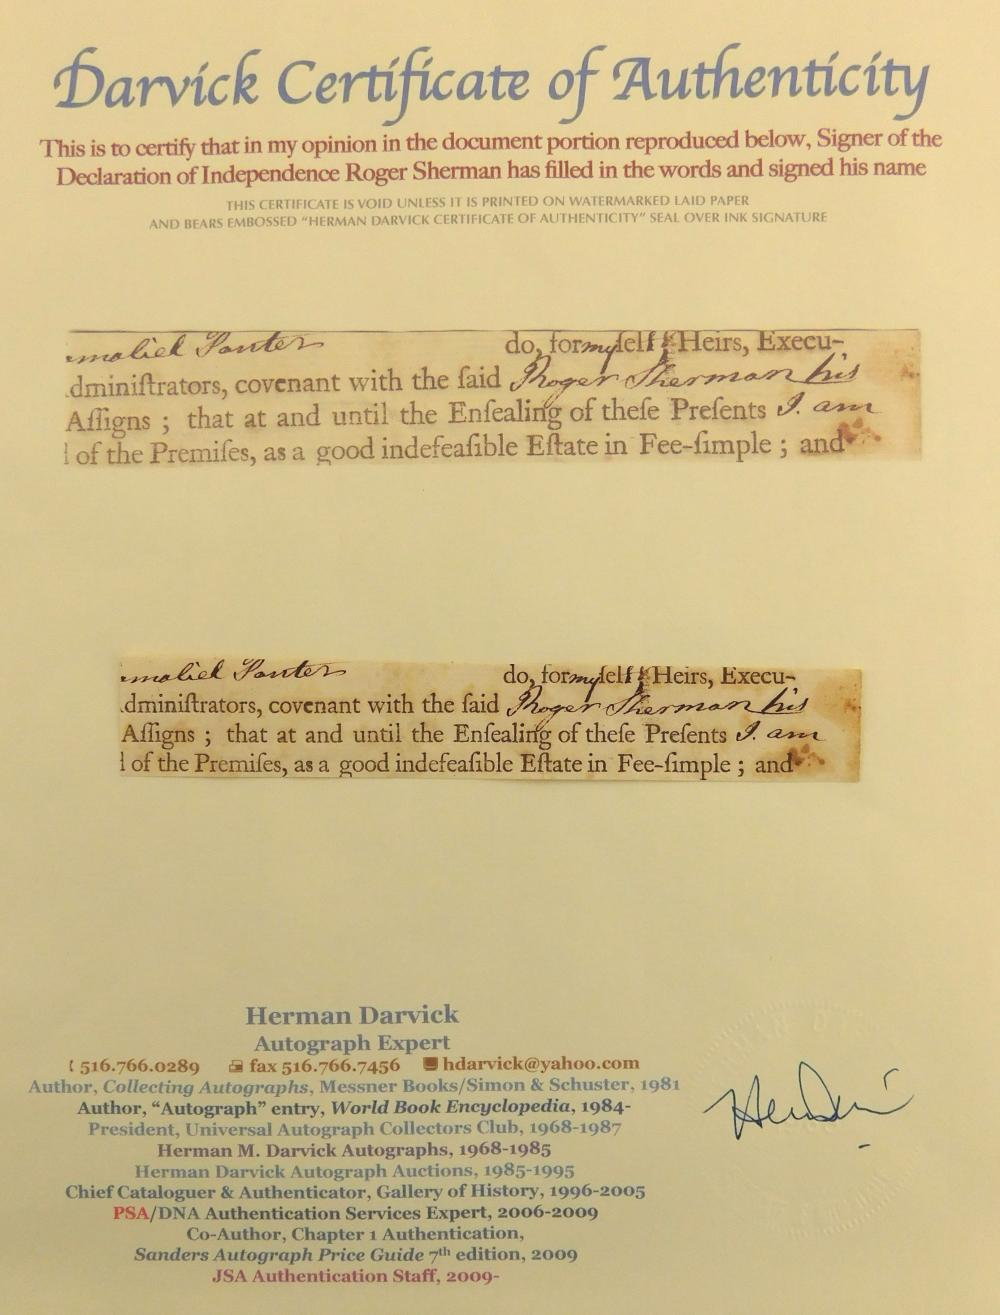 Calligraphy samples, four pieces total, including: snippet with signature of Roger Sherman (with certificate of authenticity); a let...